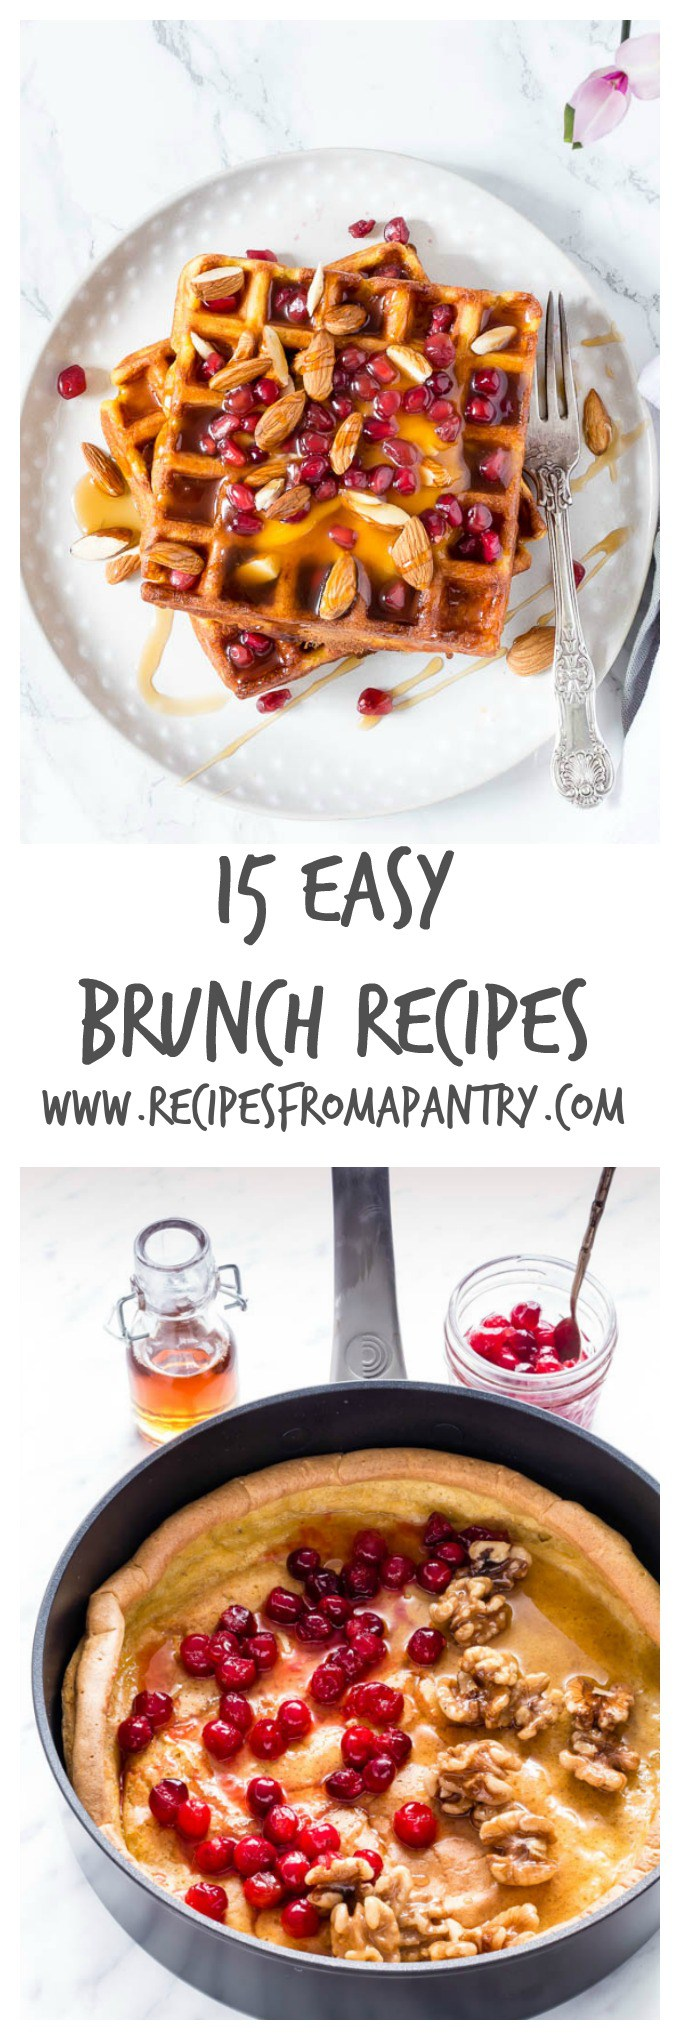 15 Easy Brunch Recipes | Recipes From A Pantry | Home | Pinterest ...